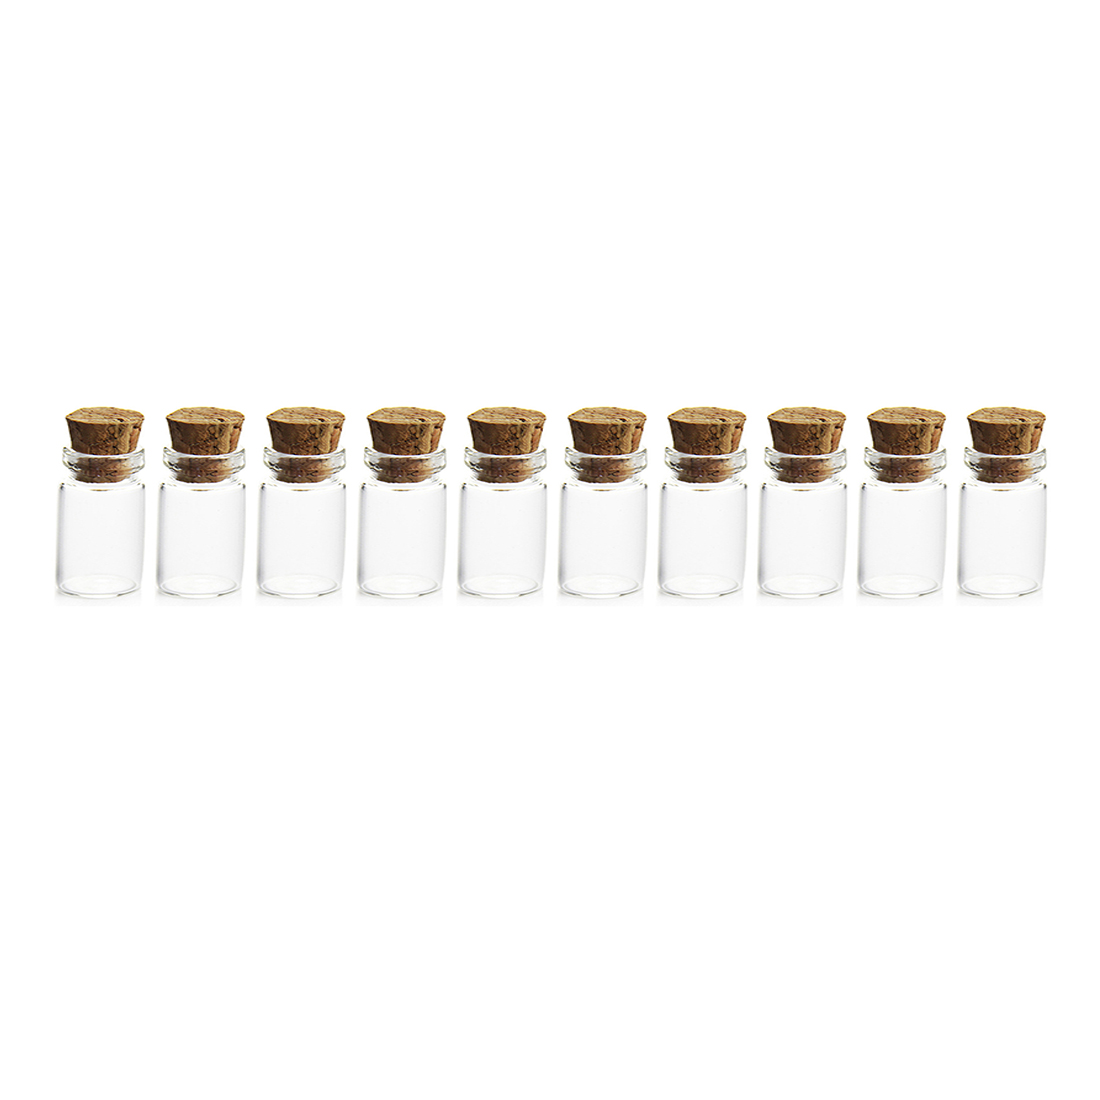 Jars Craft-Decoration Glass-Bottles Mini 1ML With Cork-Stoppers For DIY Sample Wish Empty